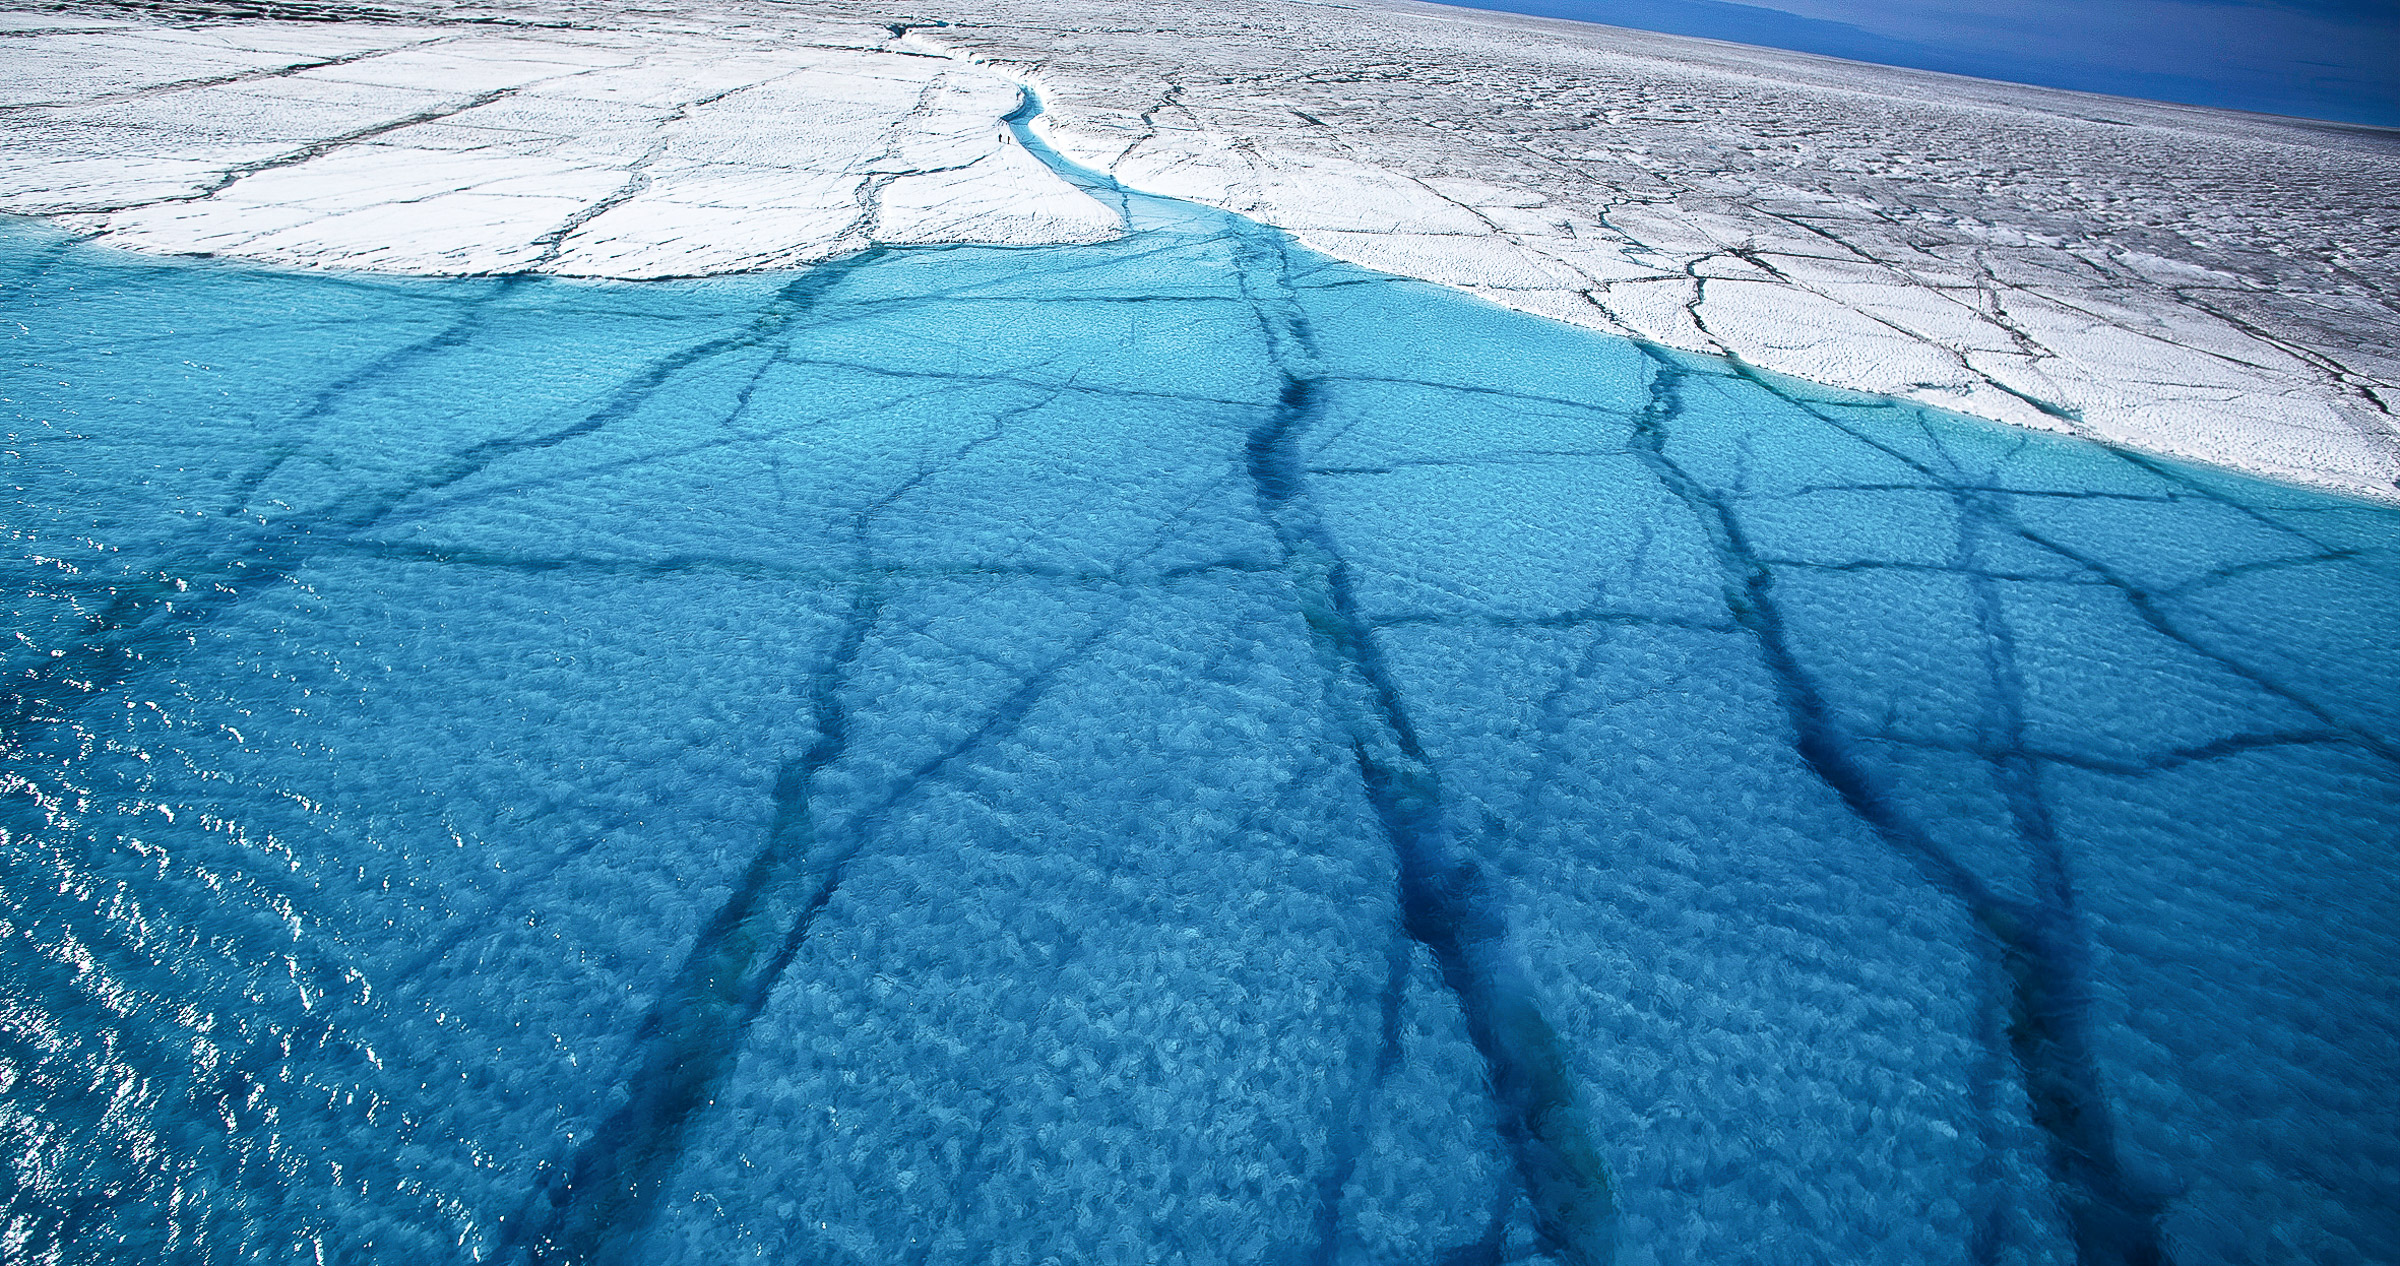 Increased surface melt allows flowing water to travel deeper into the ice causing more melt, as this lake on Greenland's icecap shows clearly.   JONAA©Ragnar Axelsson